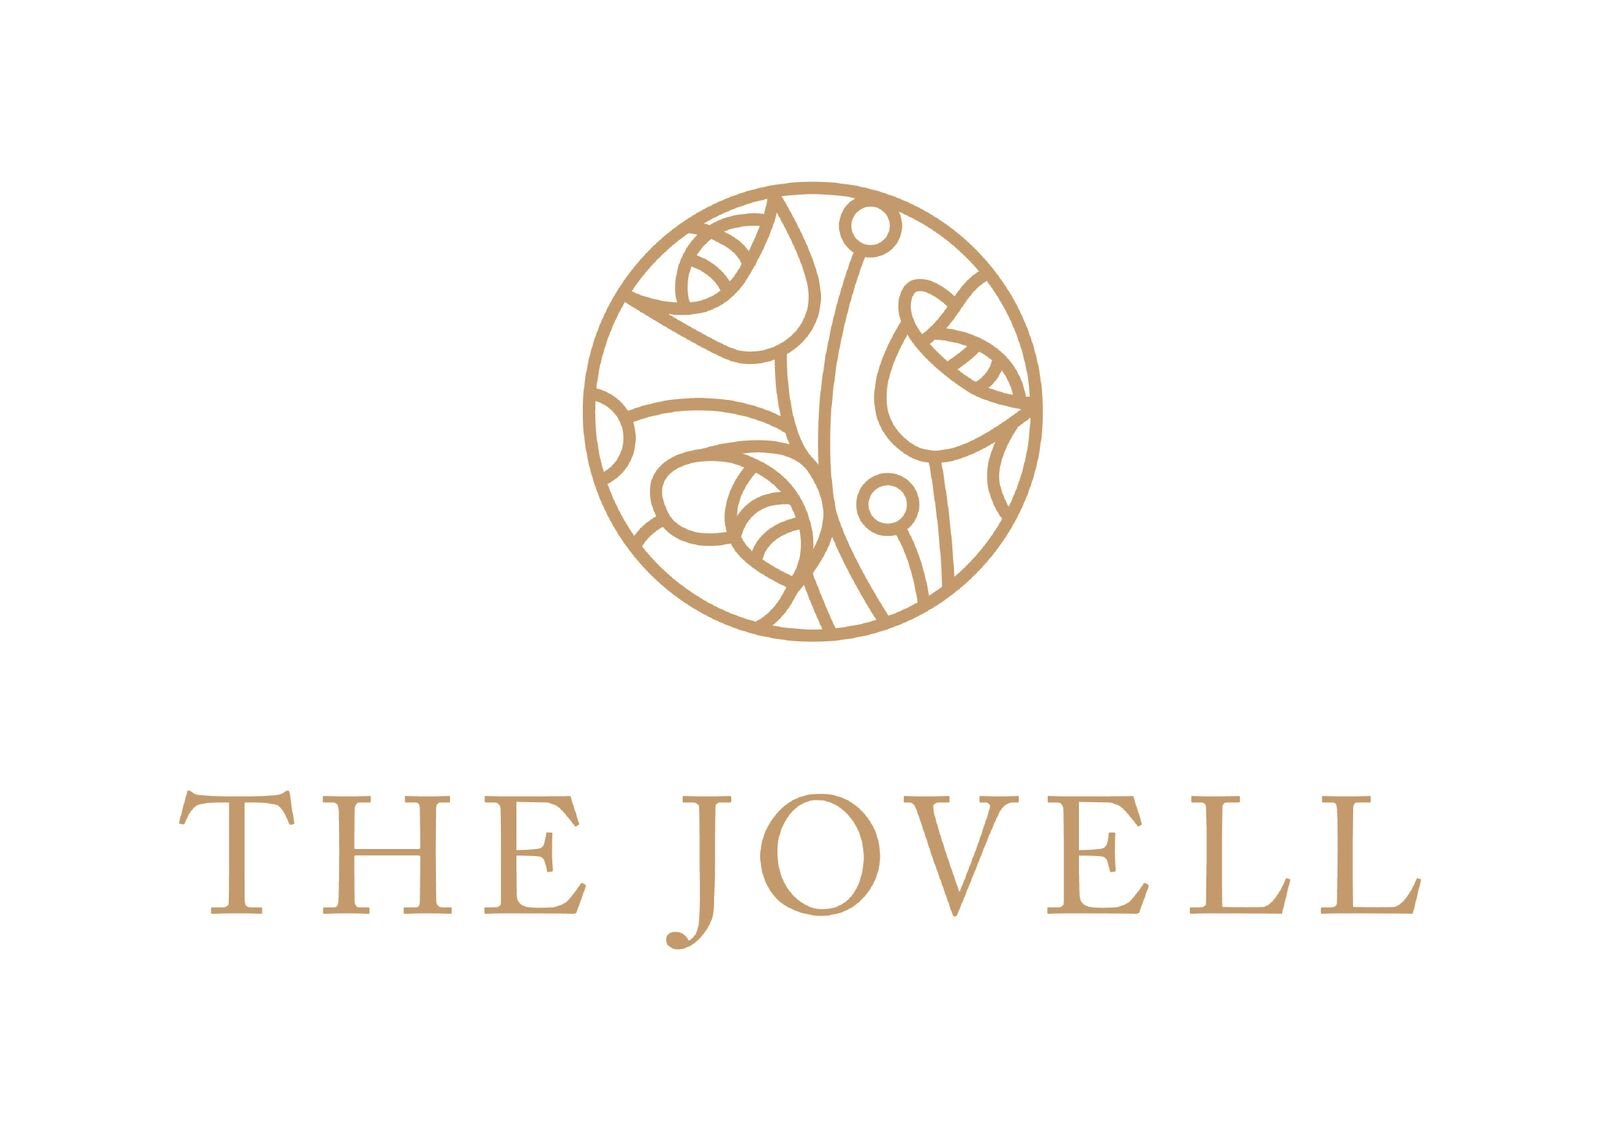 The Jovell image